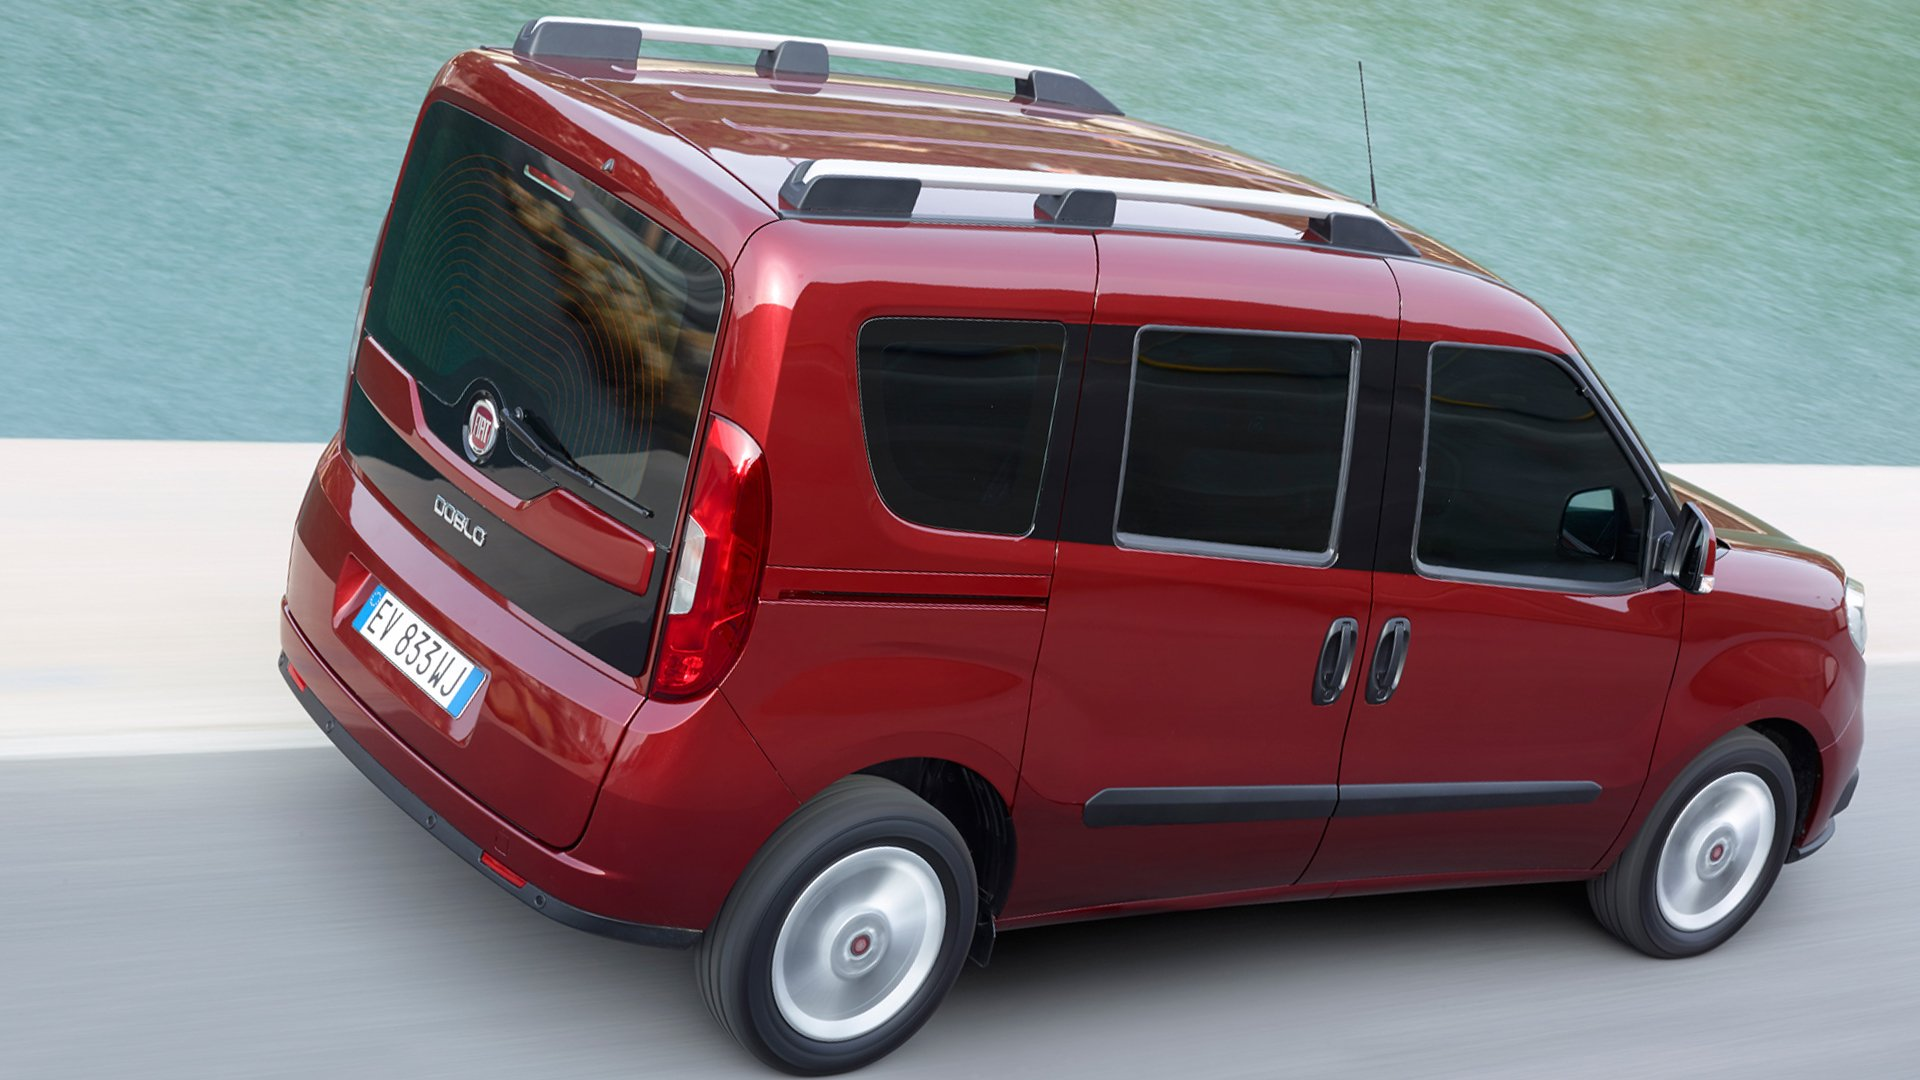 Changes Redesign New 2019 Fiat Doblo HD